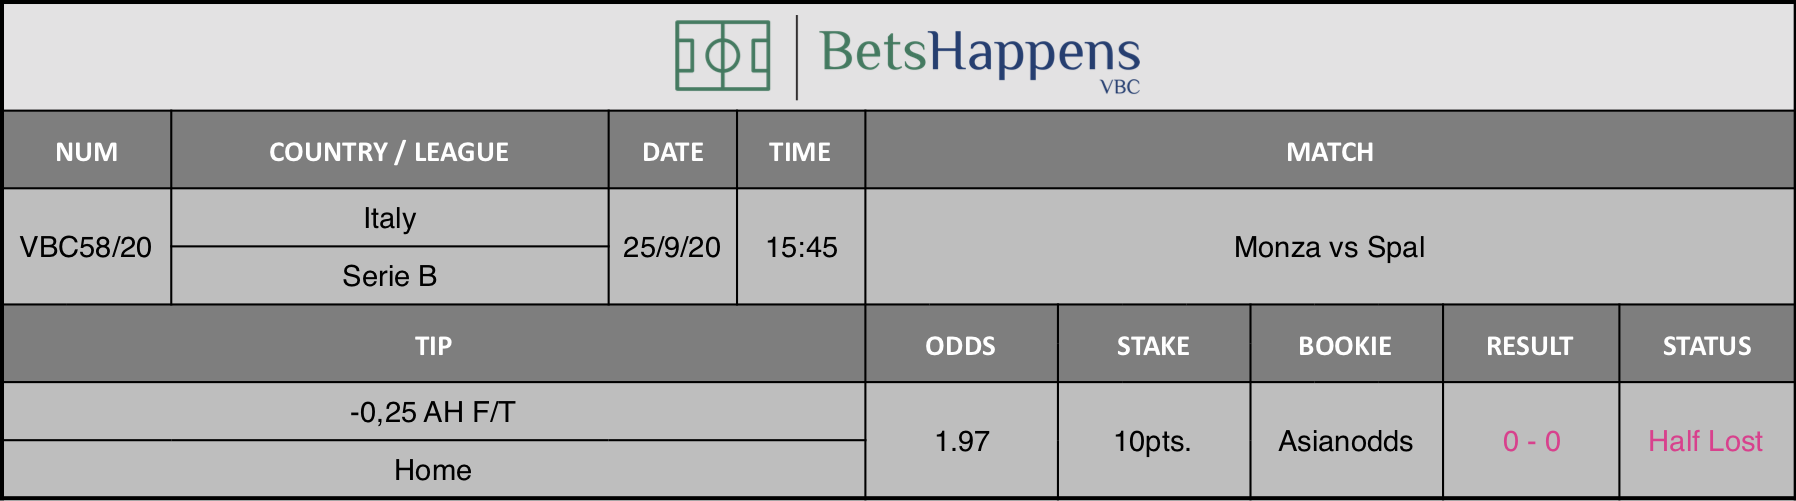 Results of our advice for the Monza vs Spal match in which -0.25 AH F / T Home is recommended.